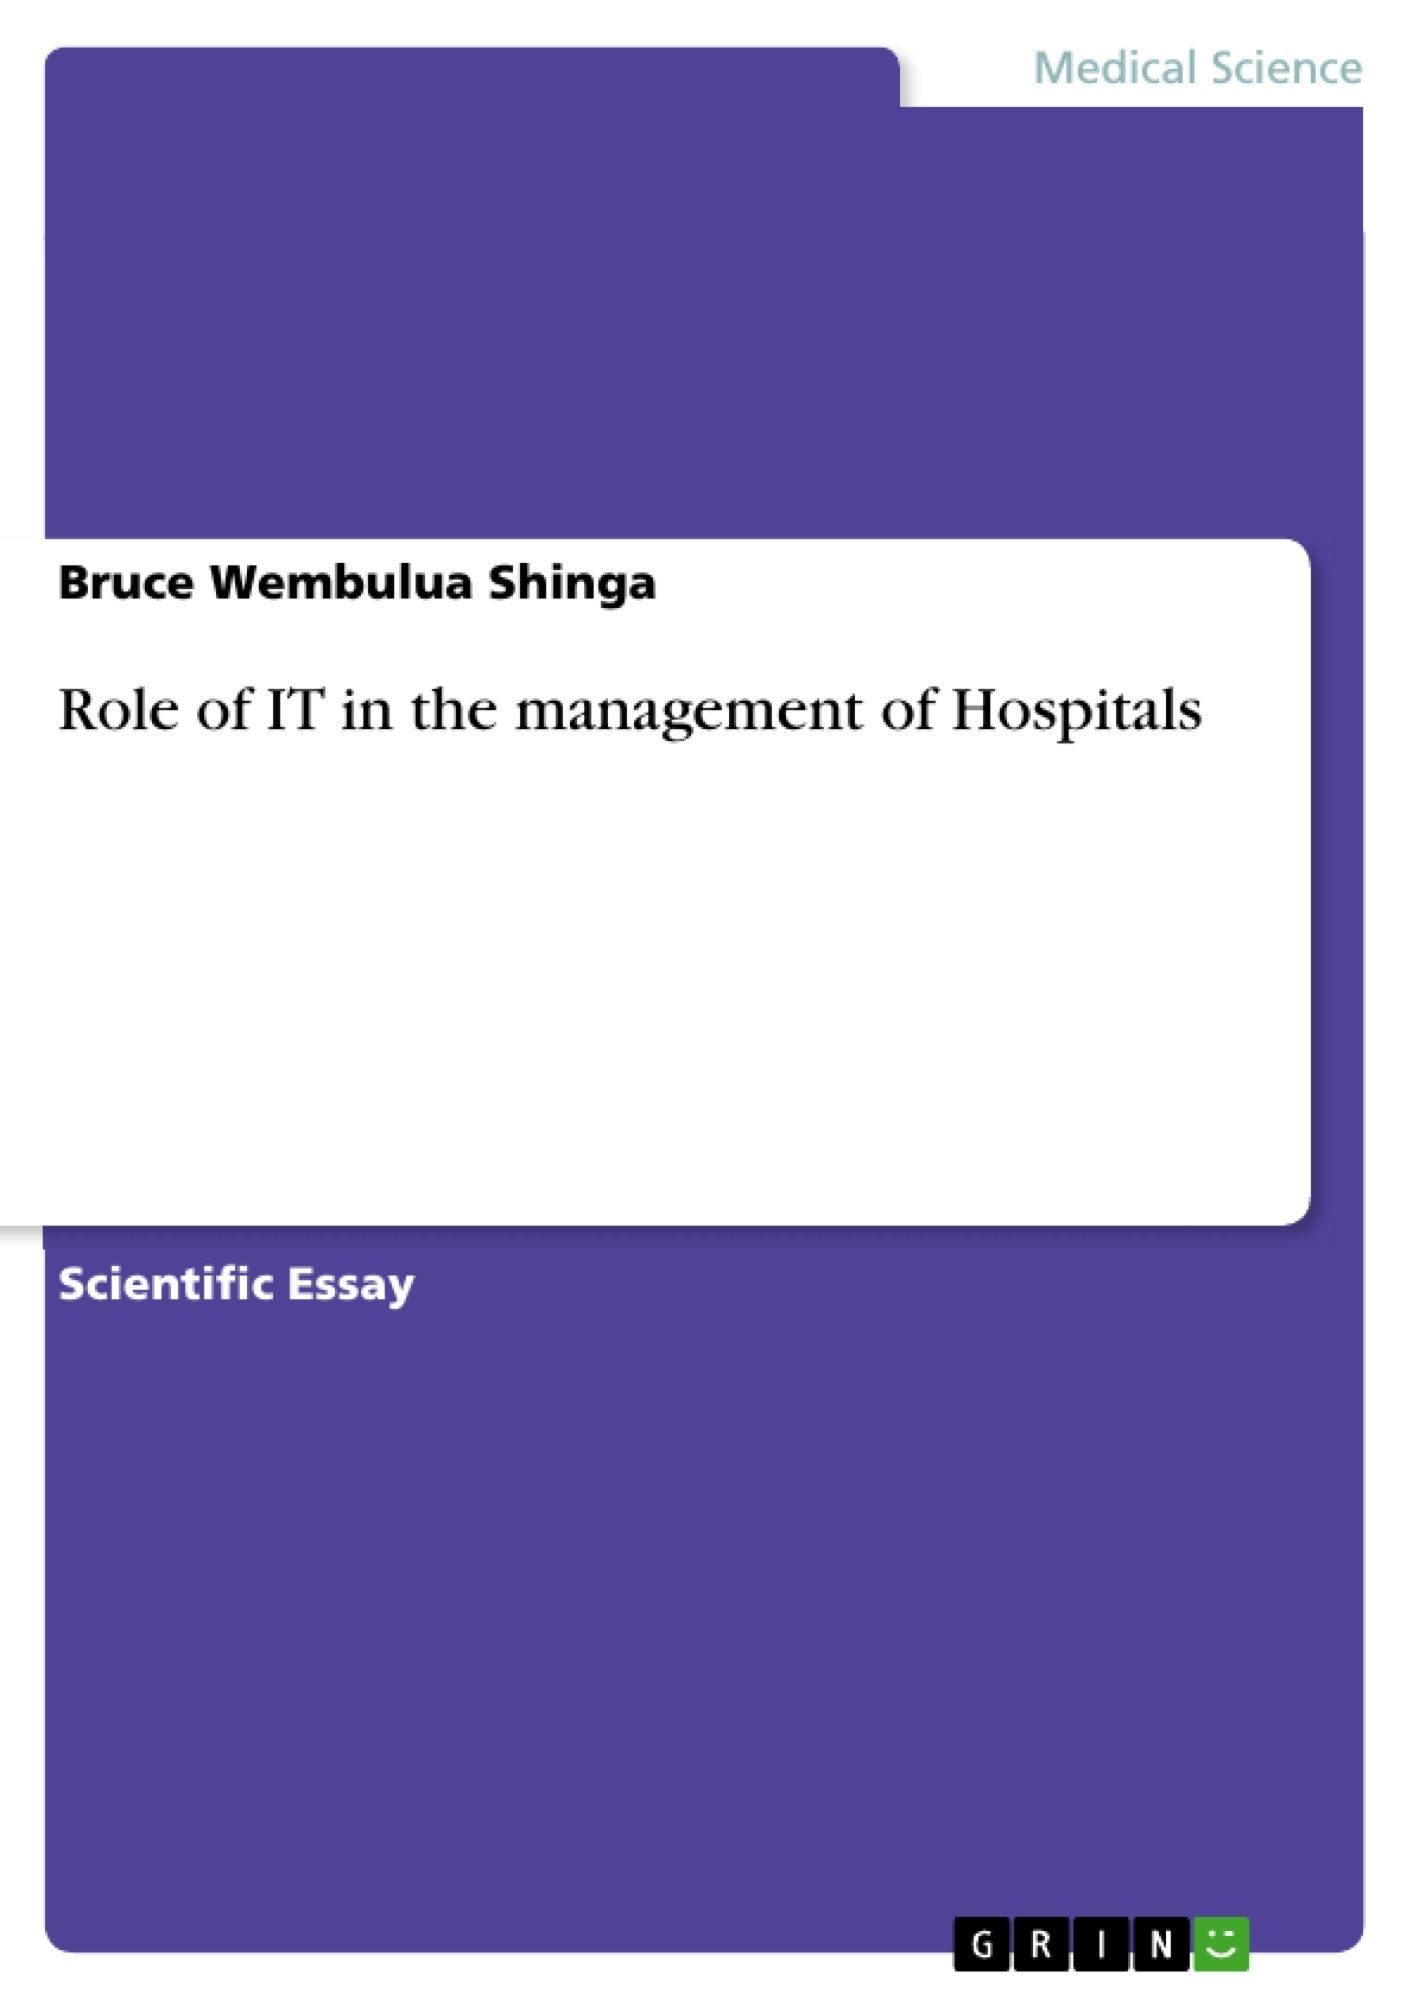 Title: Role of IT in the management of Hospitals